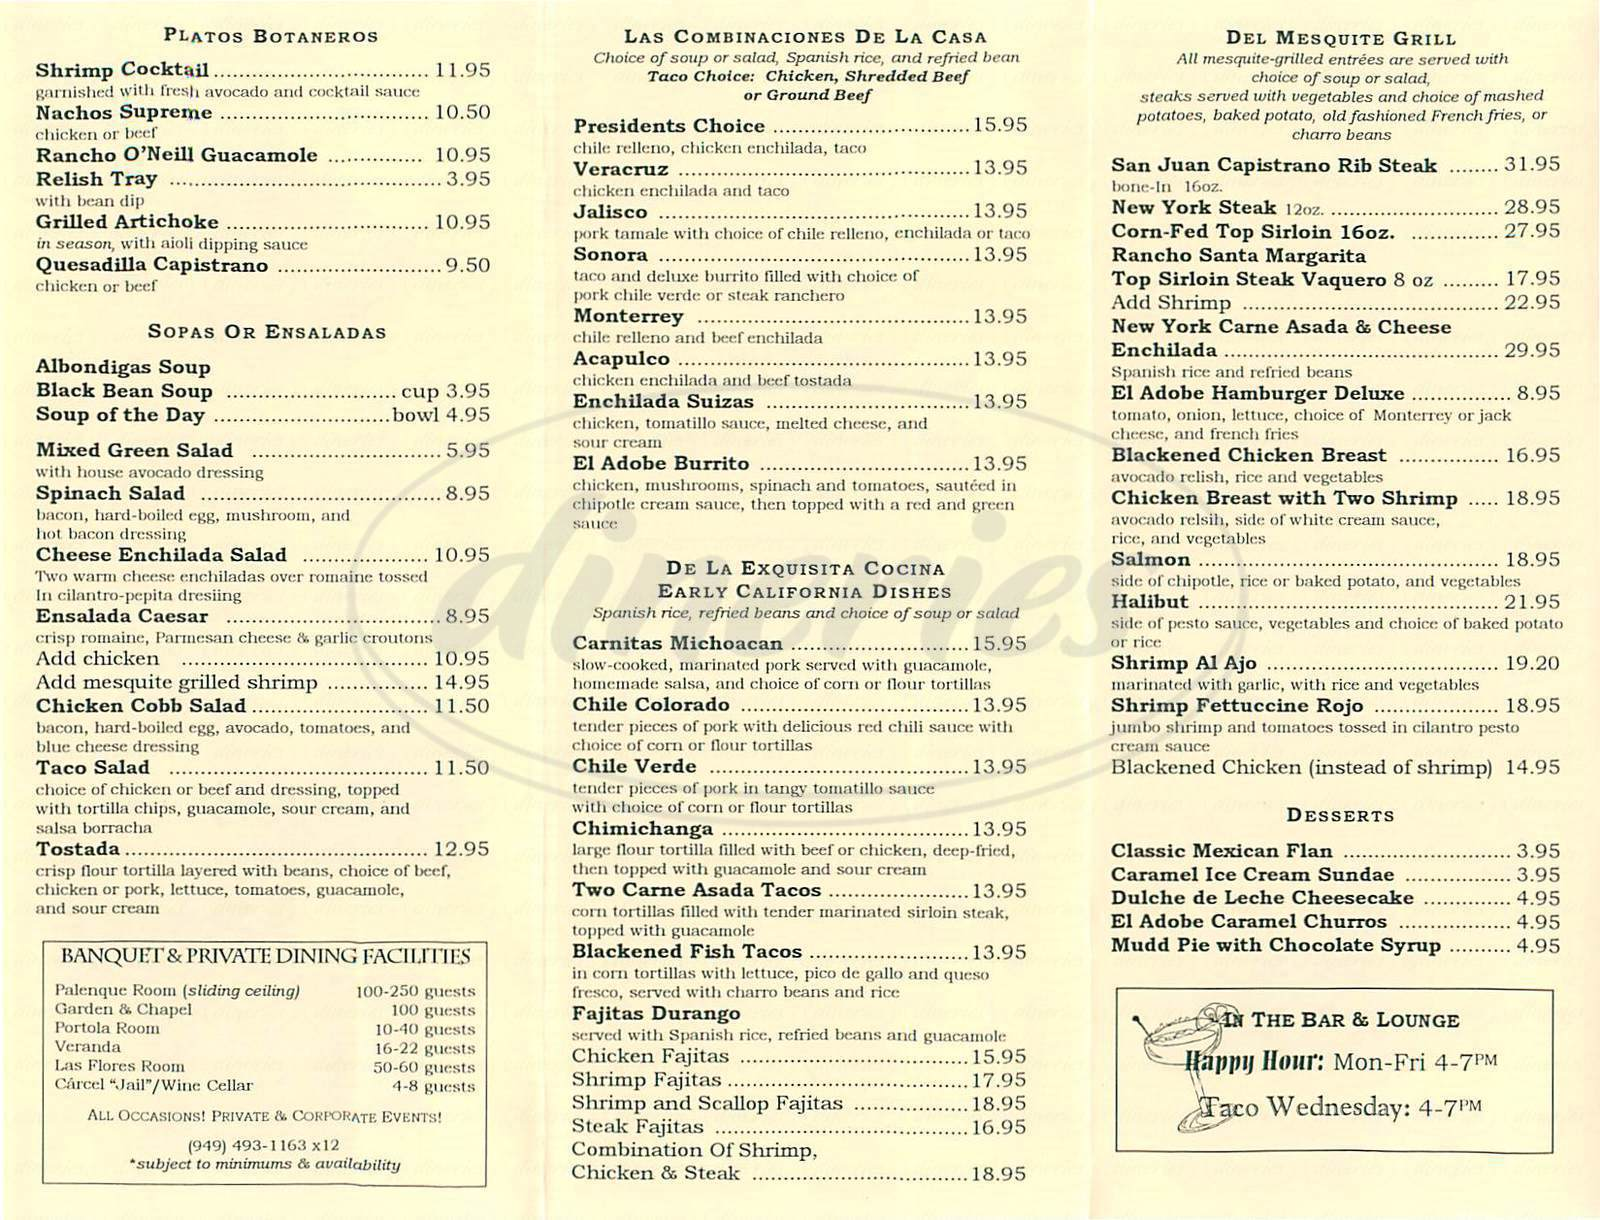 menu for El Adobe